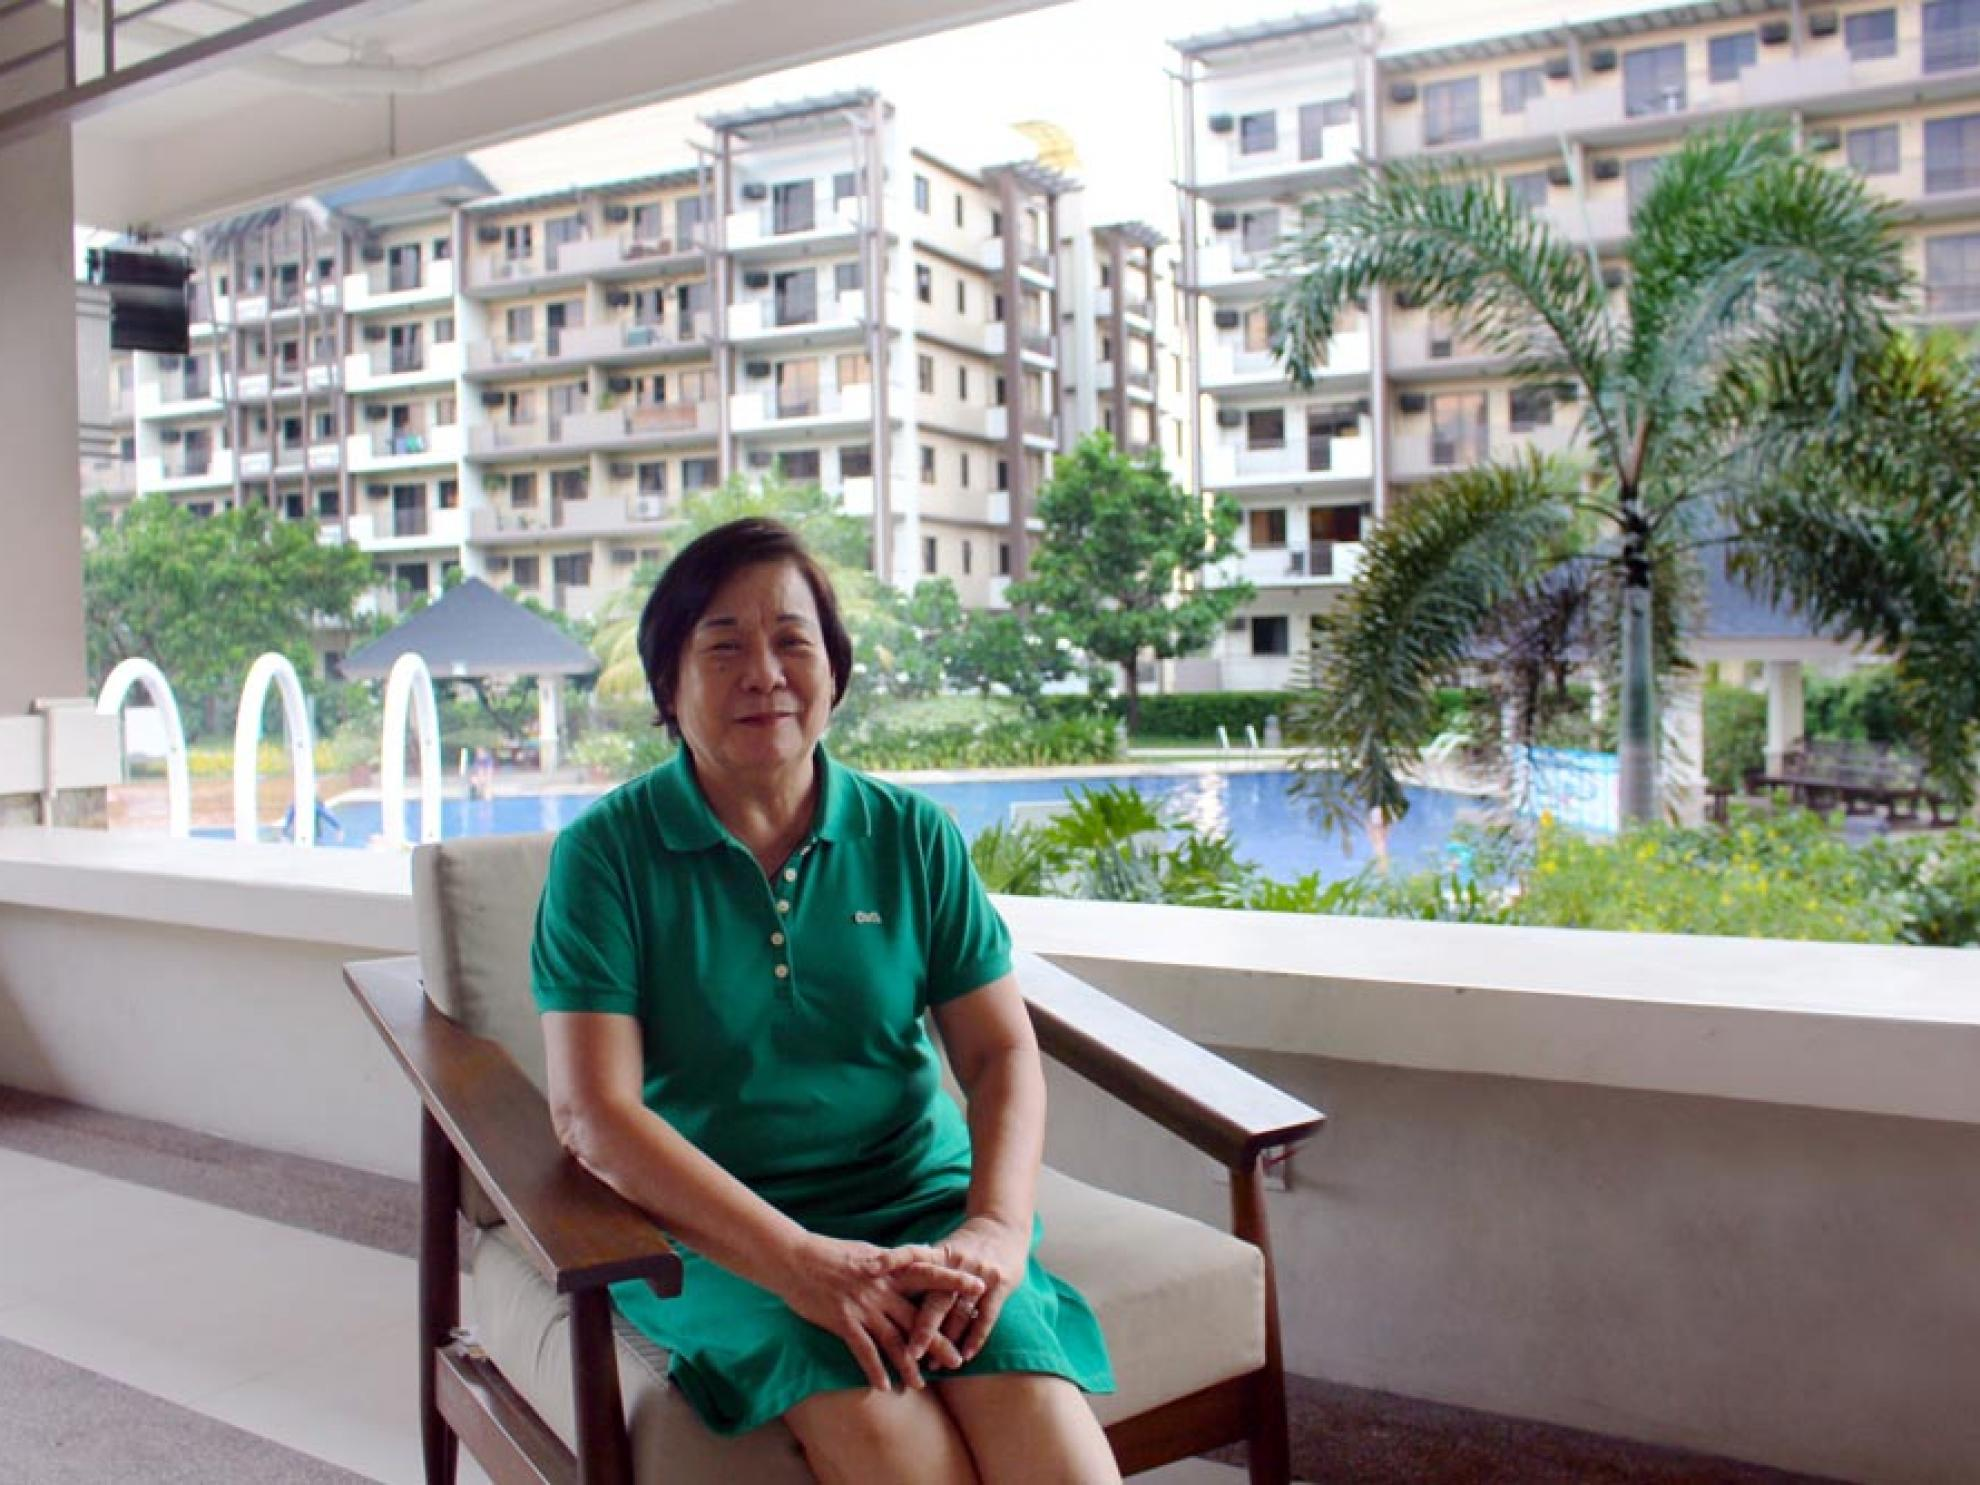 Teaching is a never ending journey for Arista Place's resident mentor